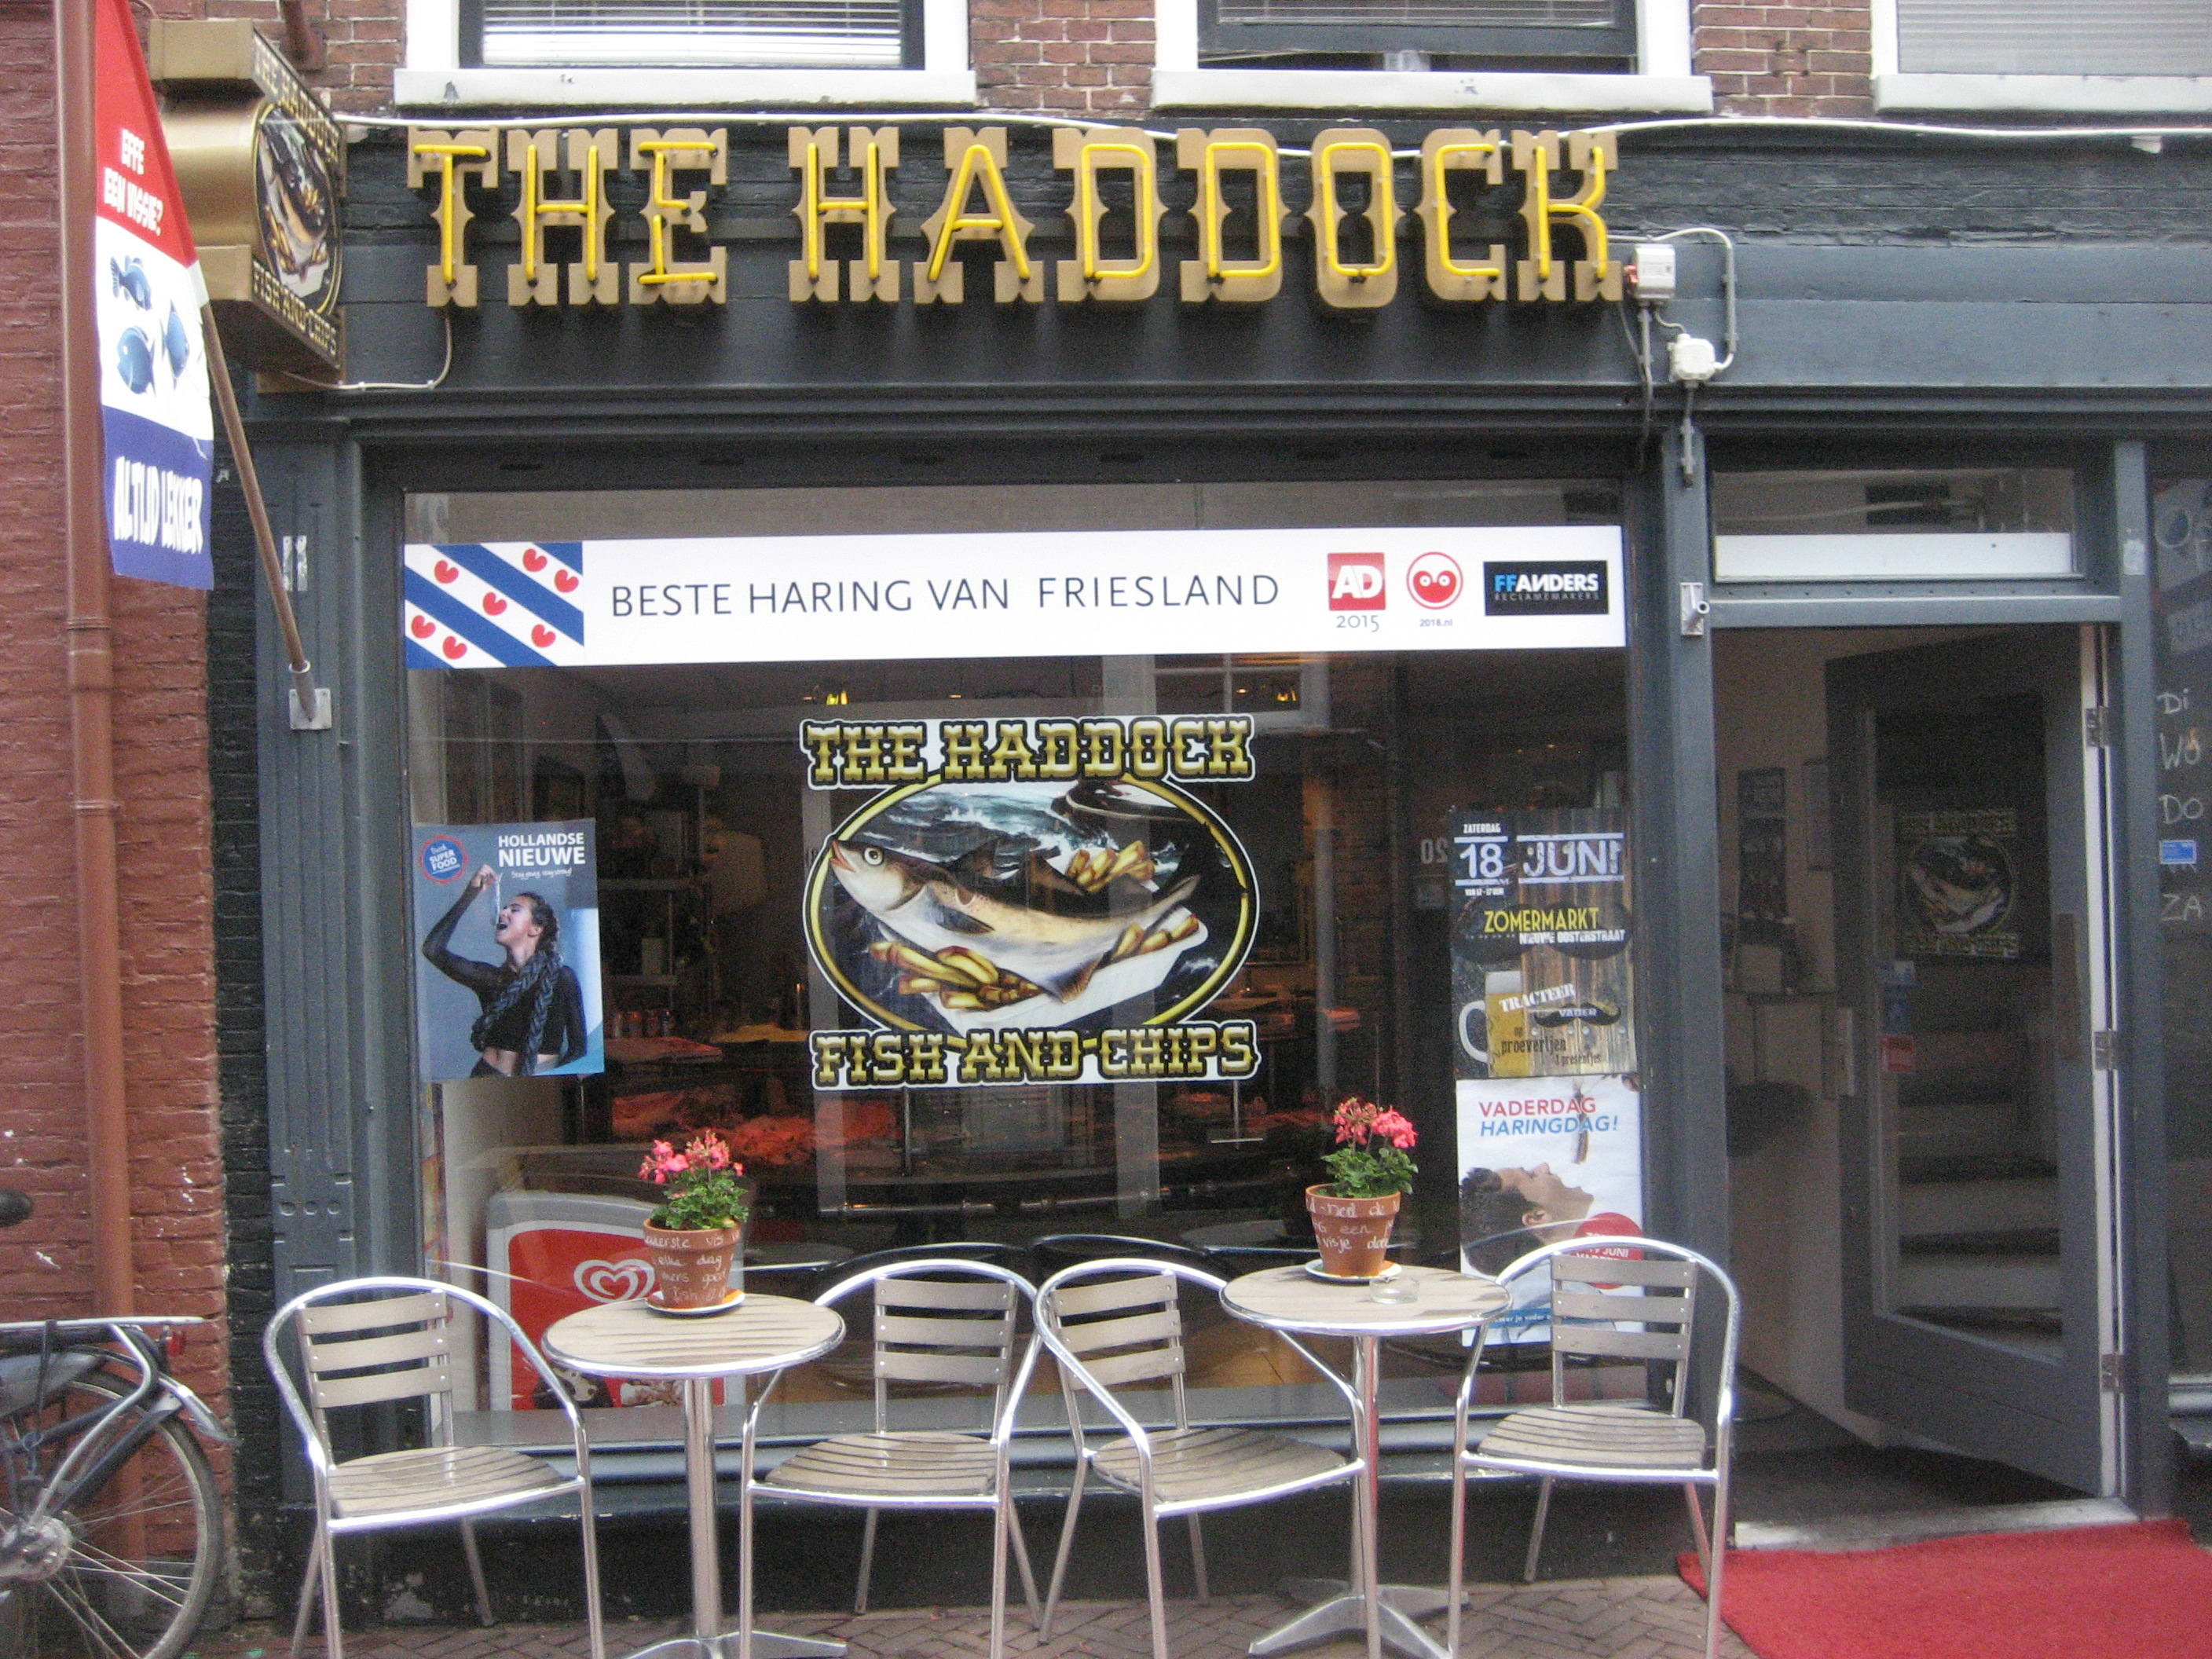 The Haddock Fish & Chips